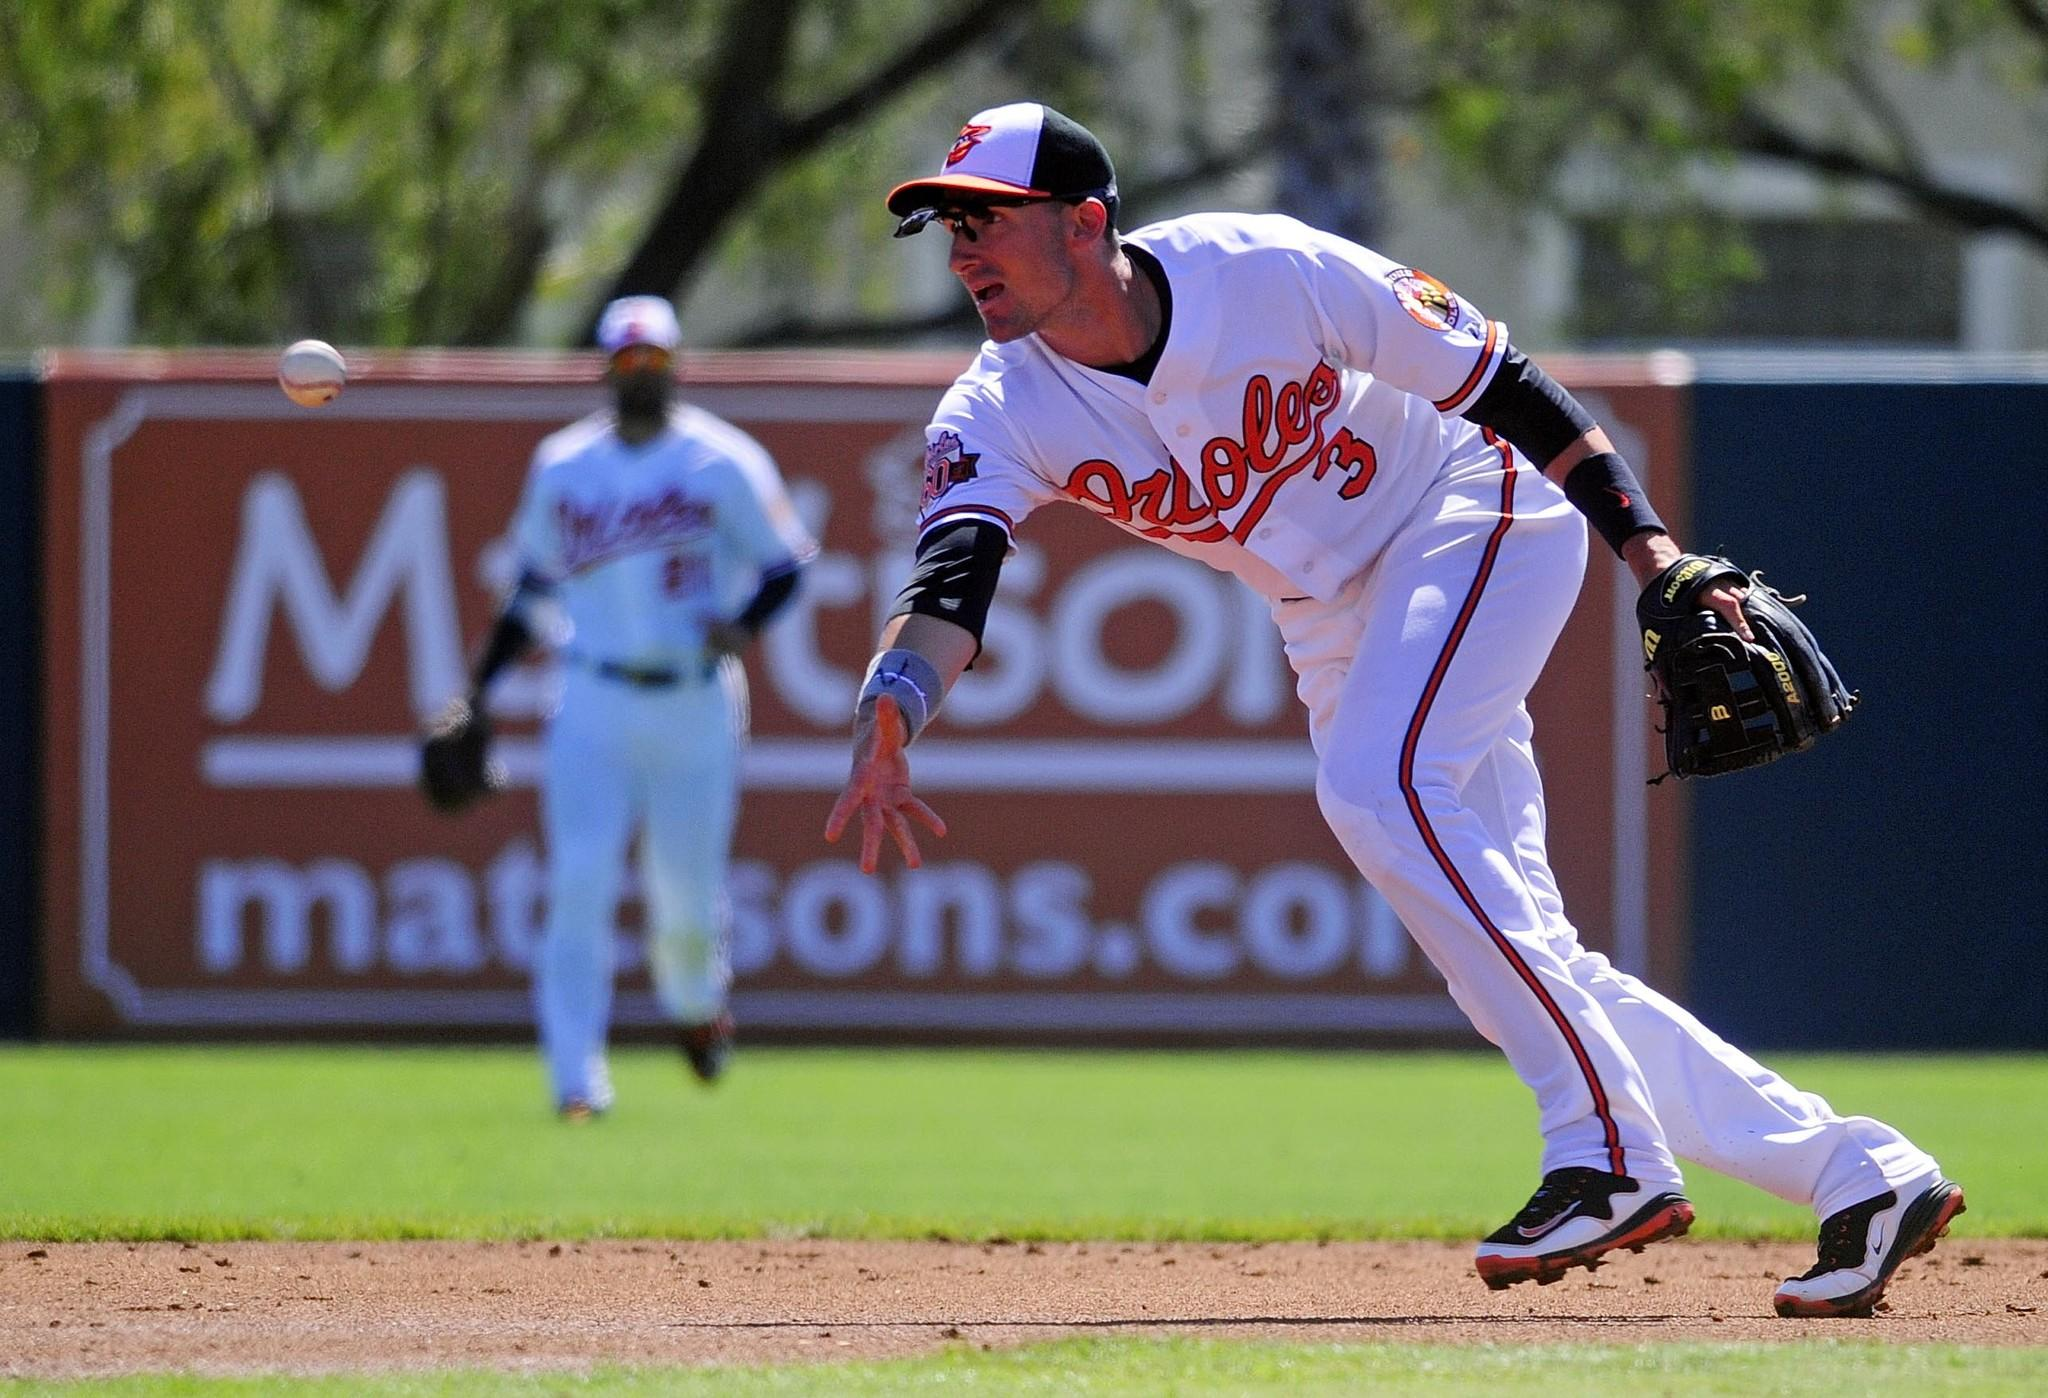 Orioles second baseman Ryan Flaherty flips the ball int he second inning against the Toronto Blue Jays on March 1.